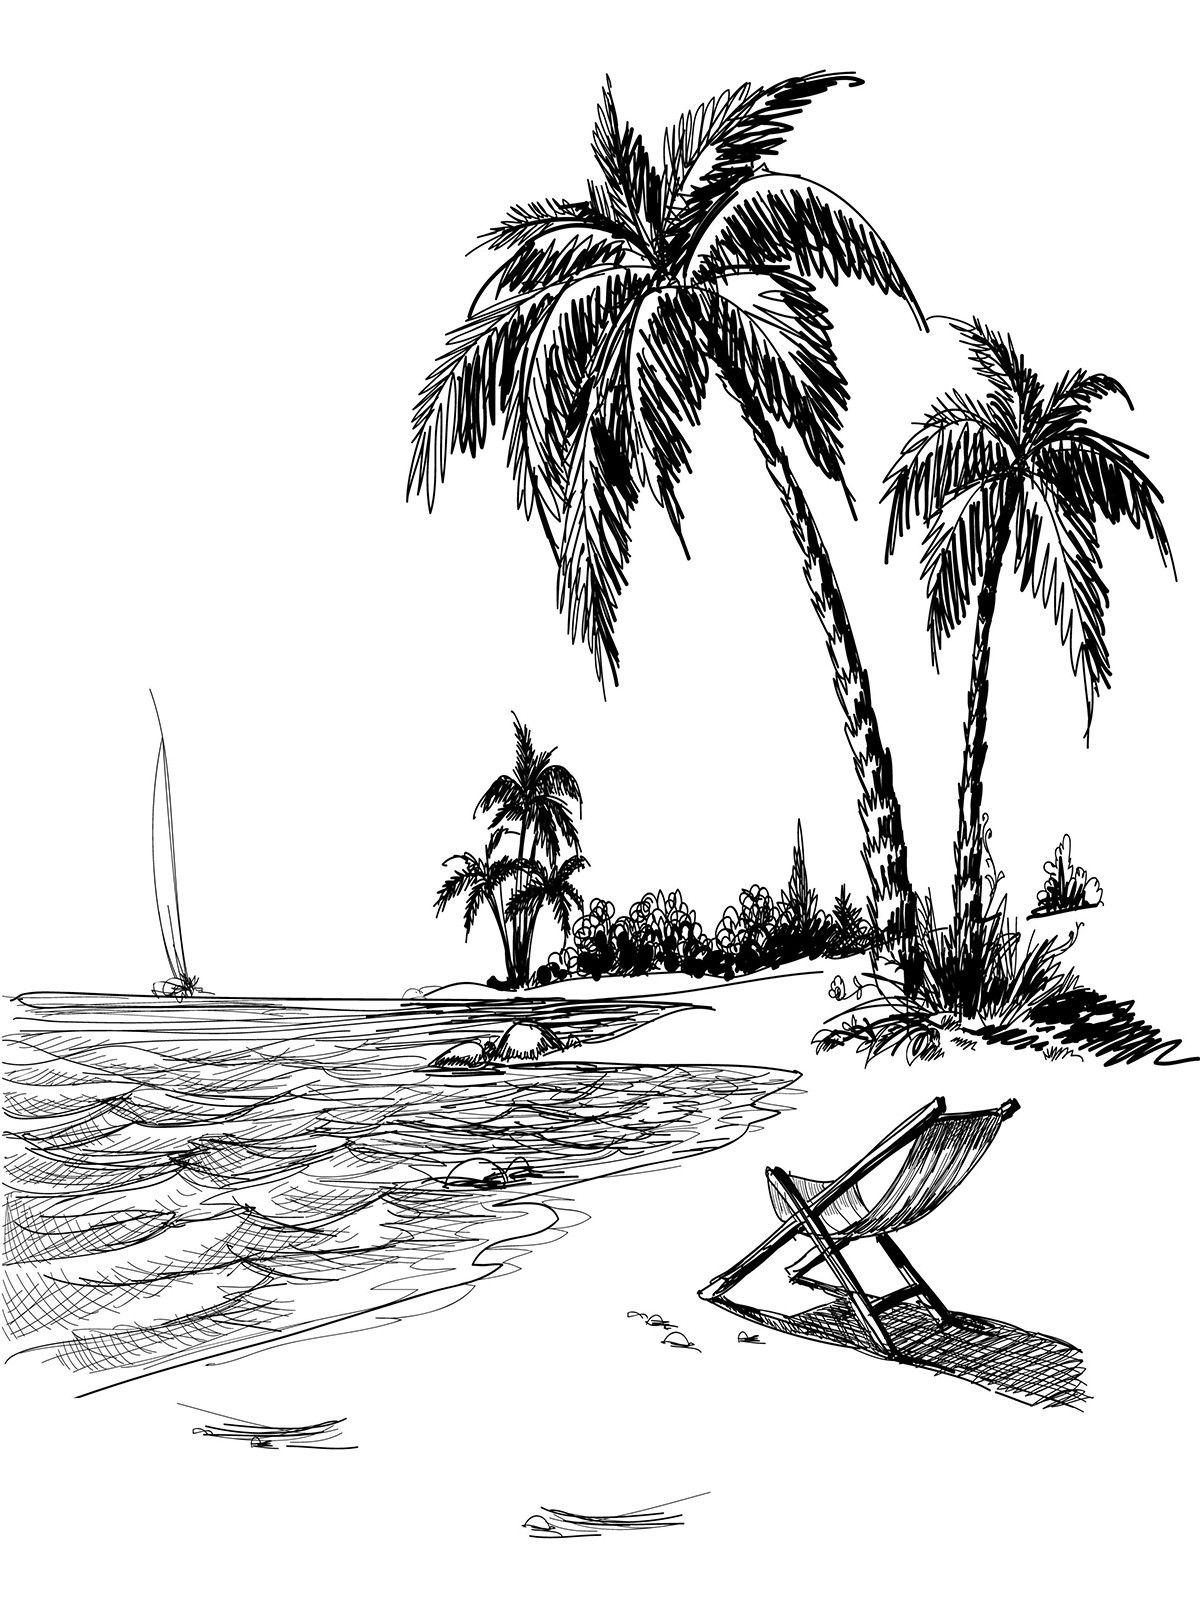 how to draw a beach how to draw a beach in 6 steps with picsarts step by step beach to how draw a